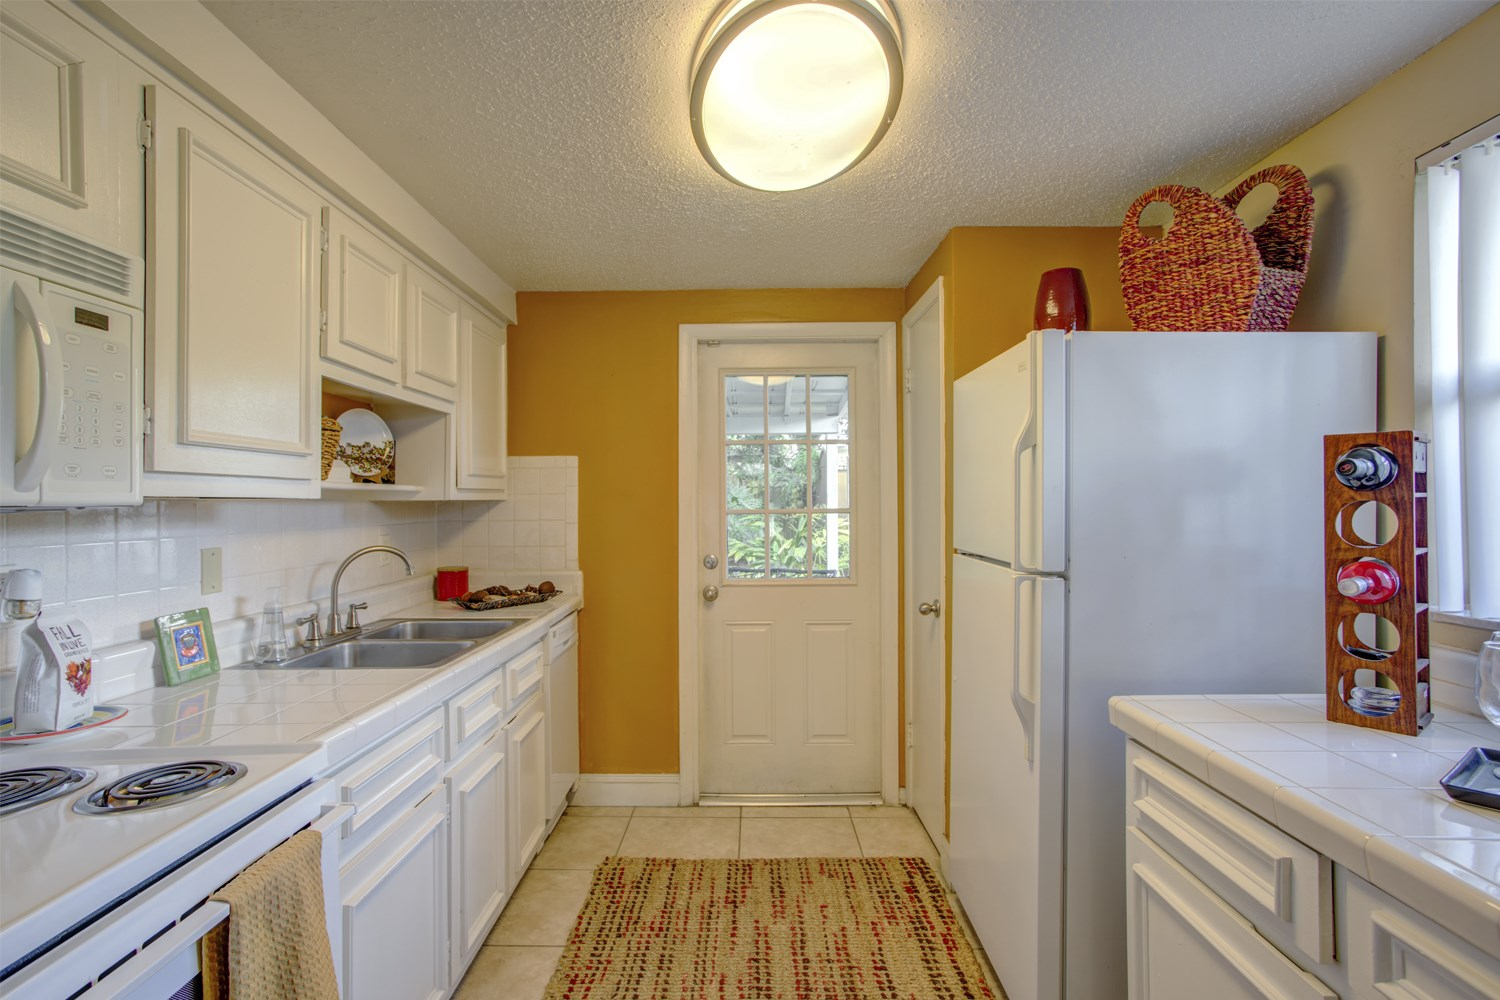 galley kitchen at Bungalow Oaks in Tampa Florida